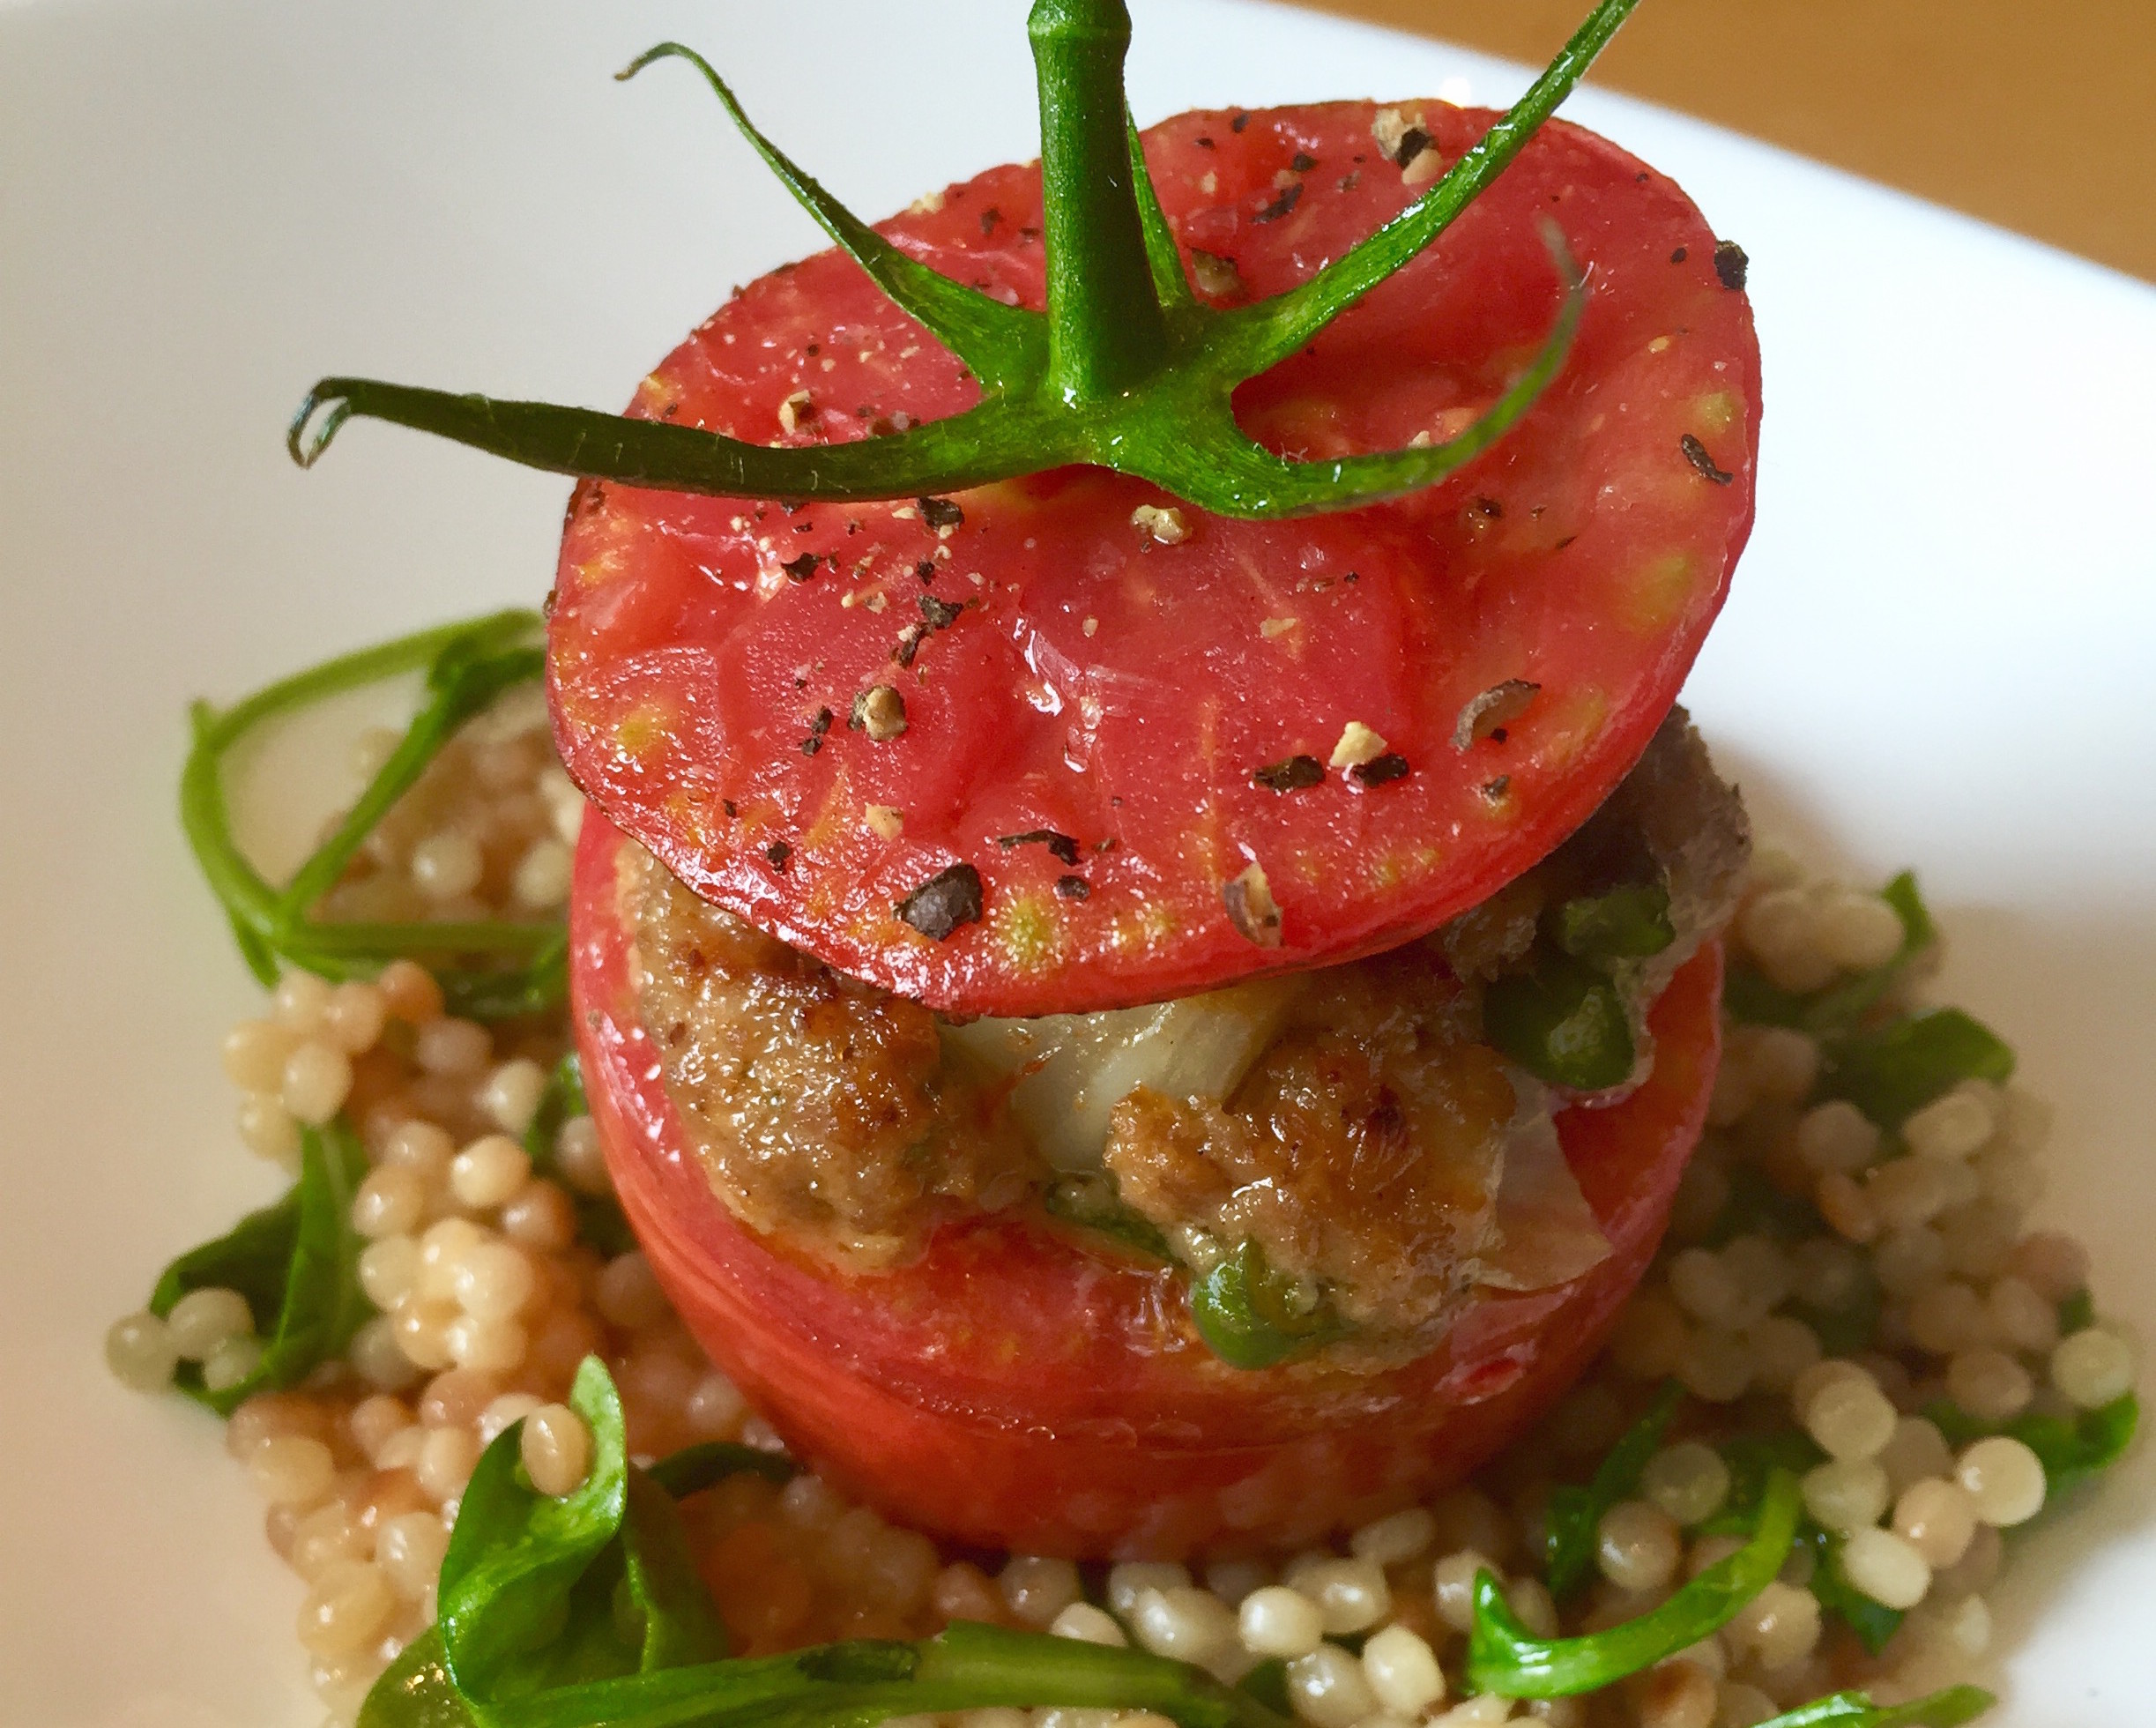 Stuffed tomatoes with pearl pasta are part of Central's special summer tomato week menu. (Photo: Central)